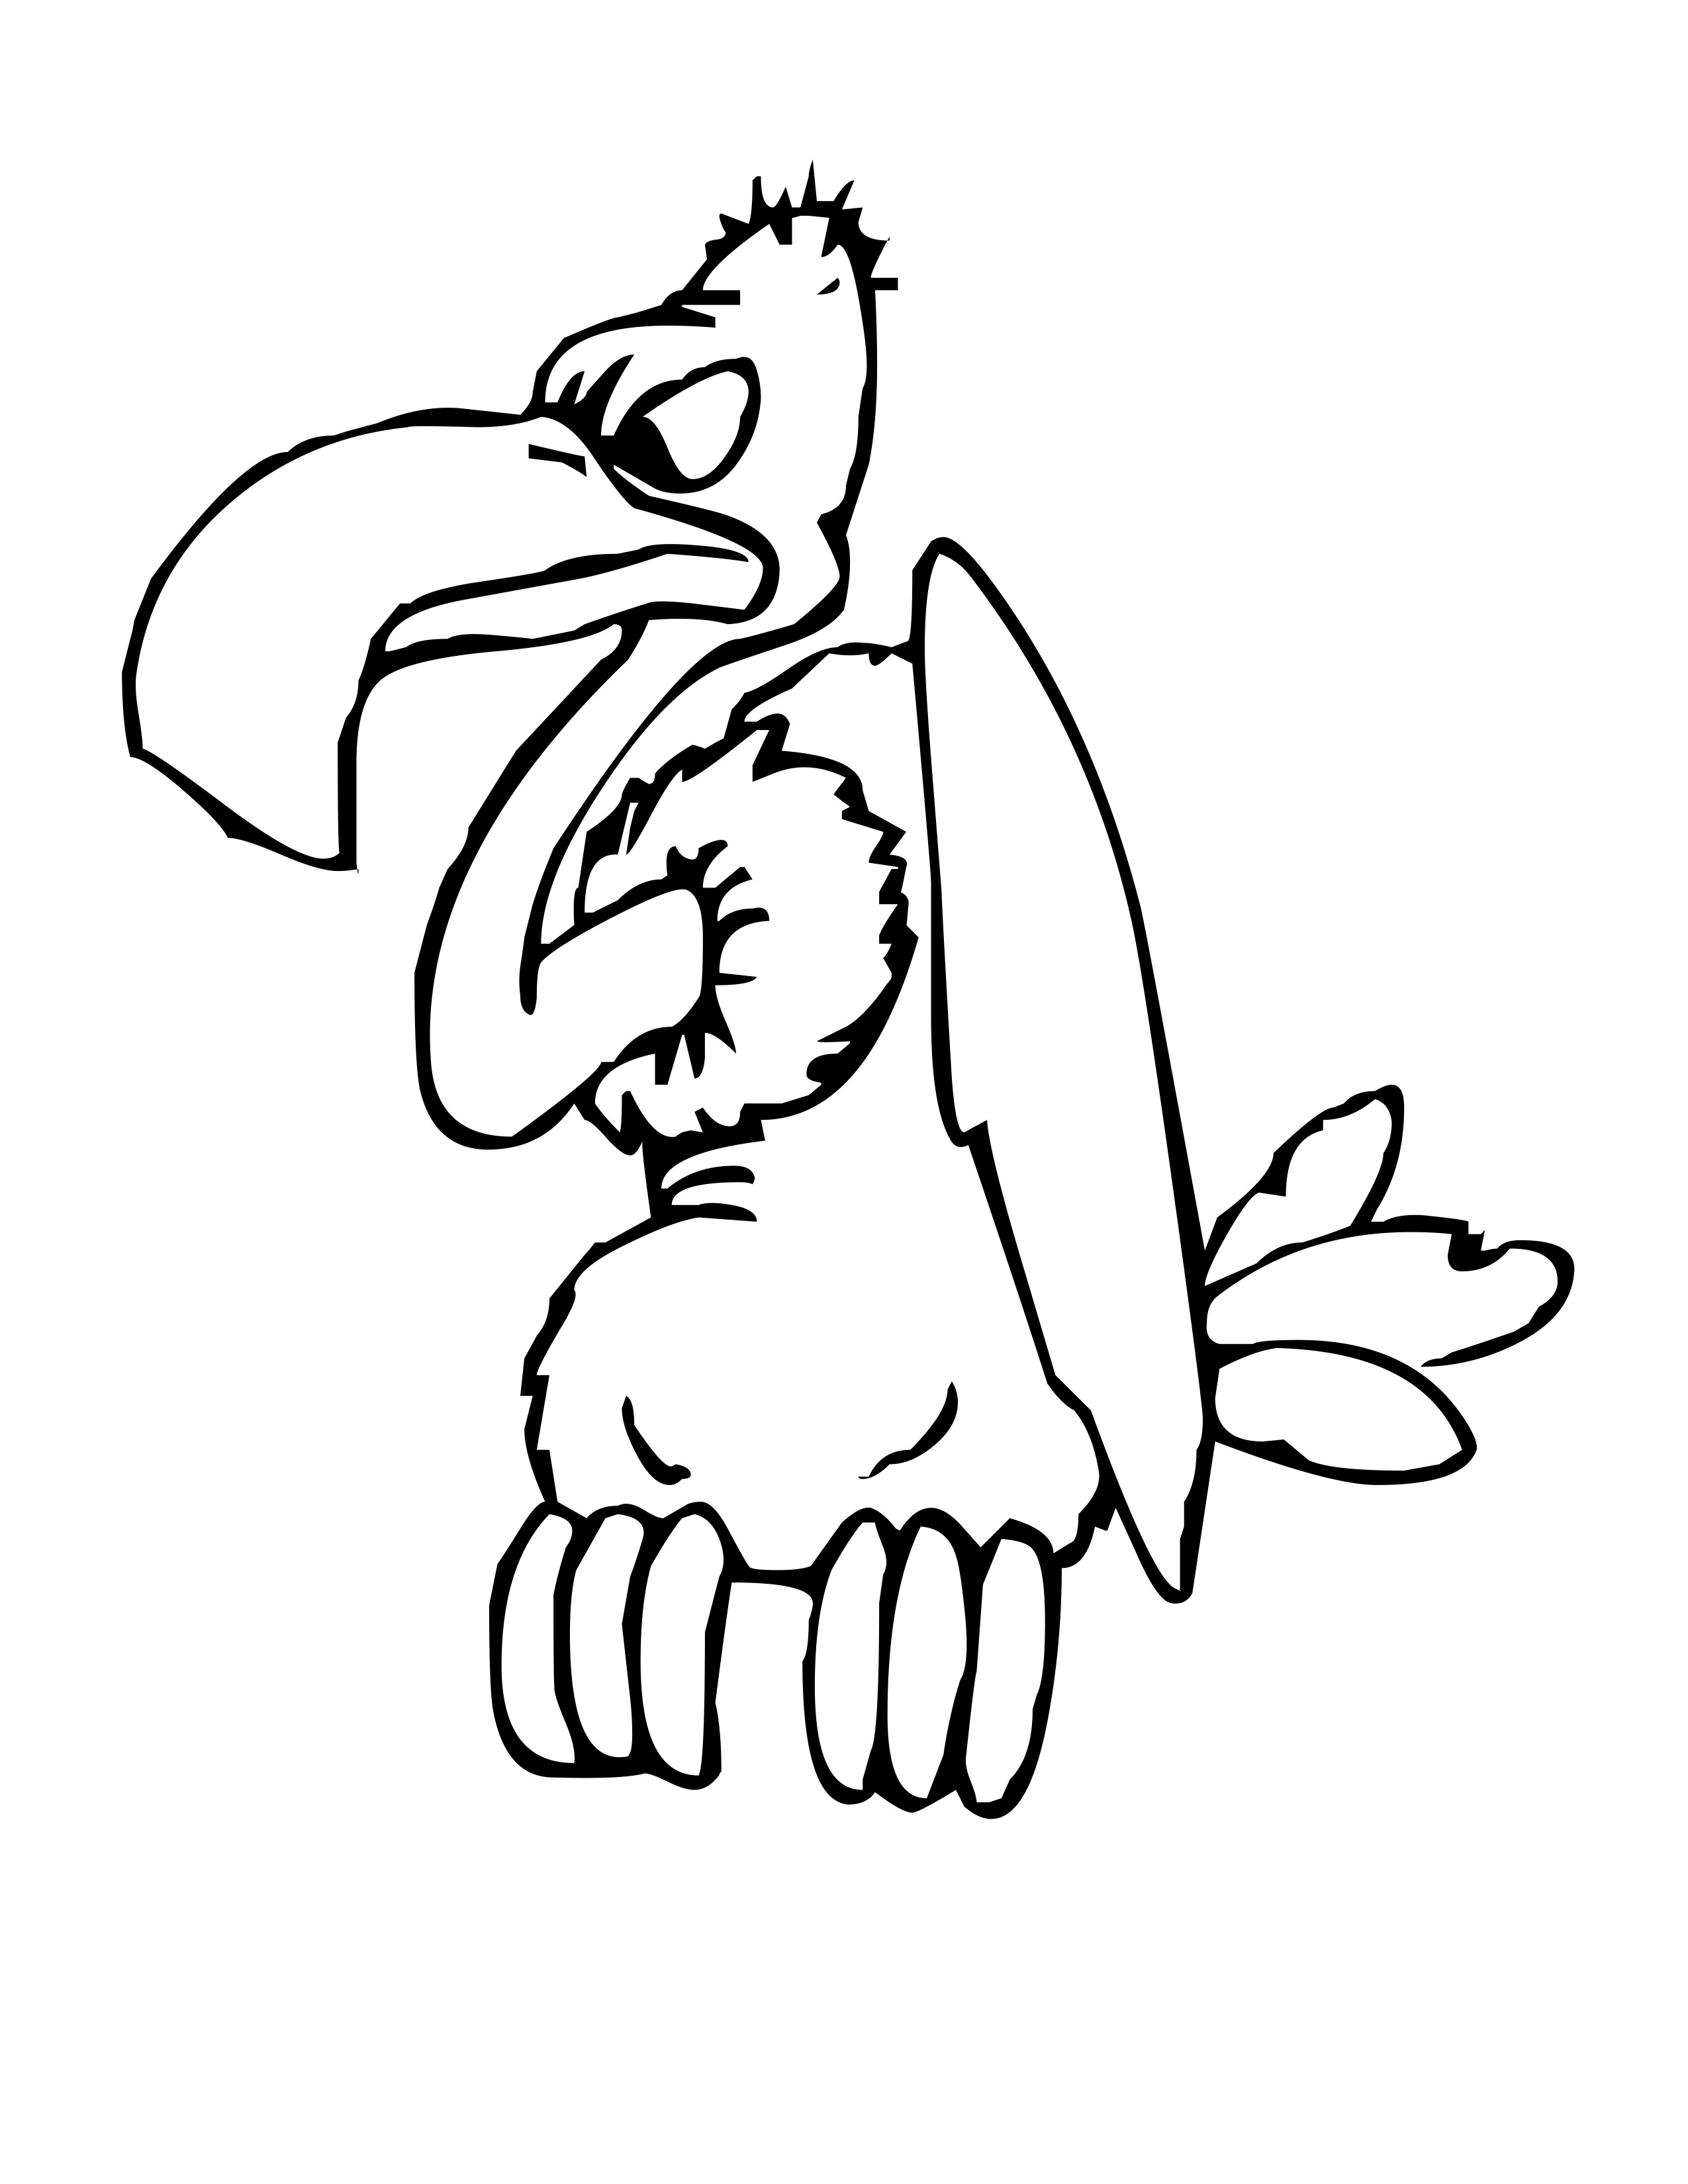 vulture images to color white rumped vulture coloring page free printable vulture to color images